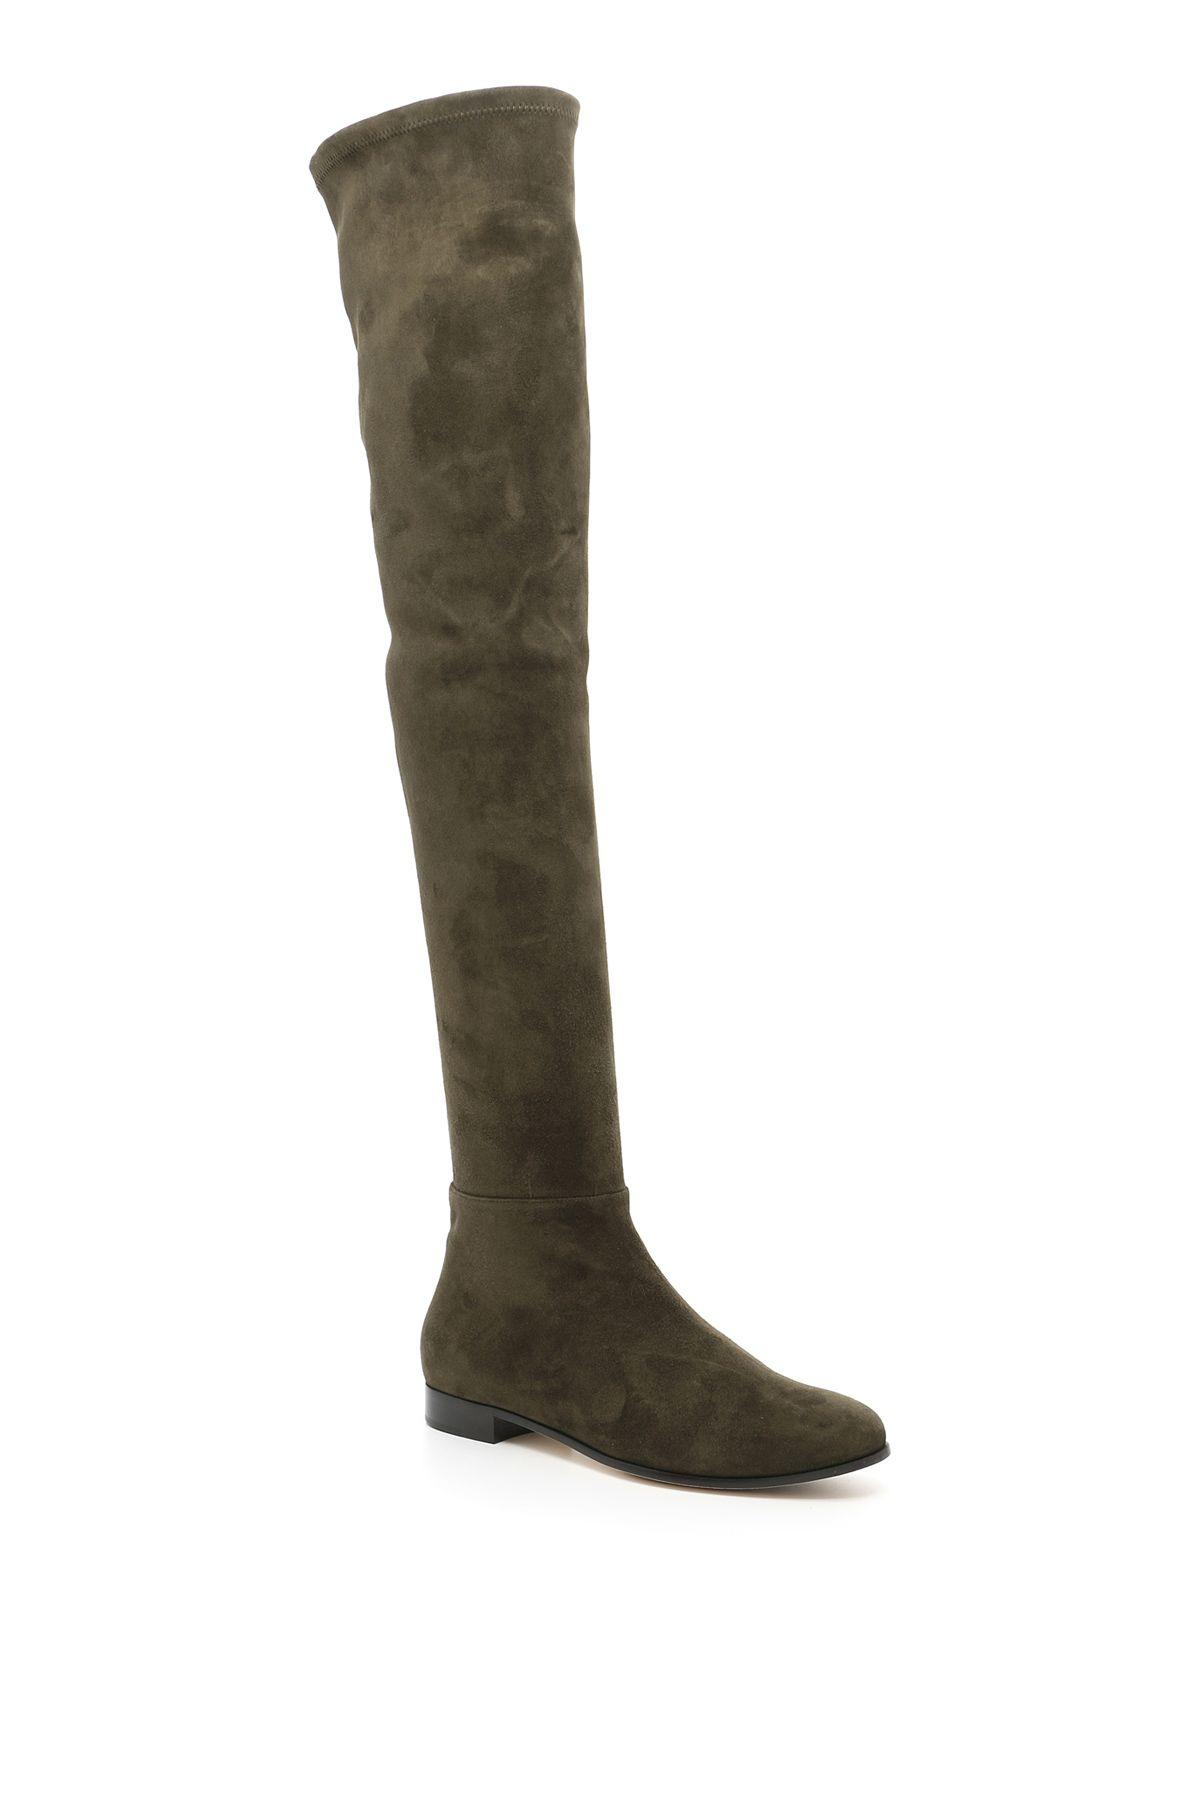 Jimmy Choo Stretch Suede Boots In Army Greenverde